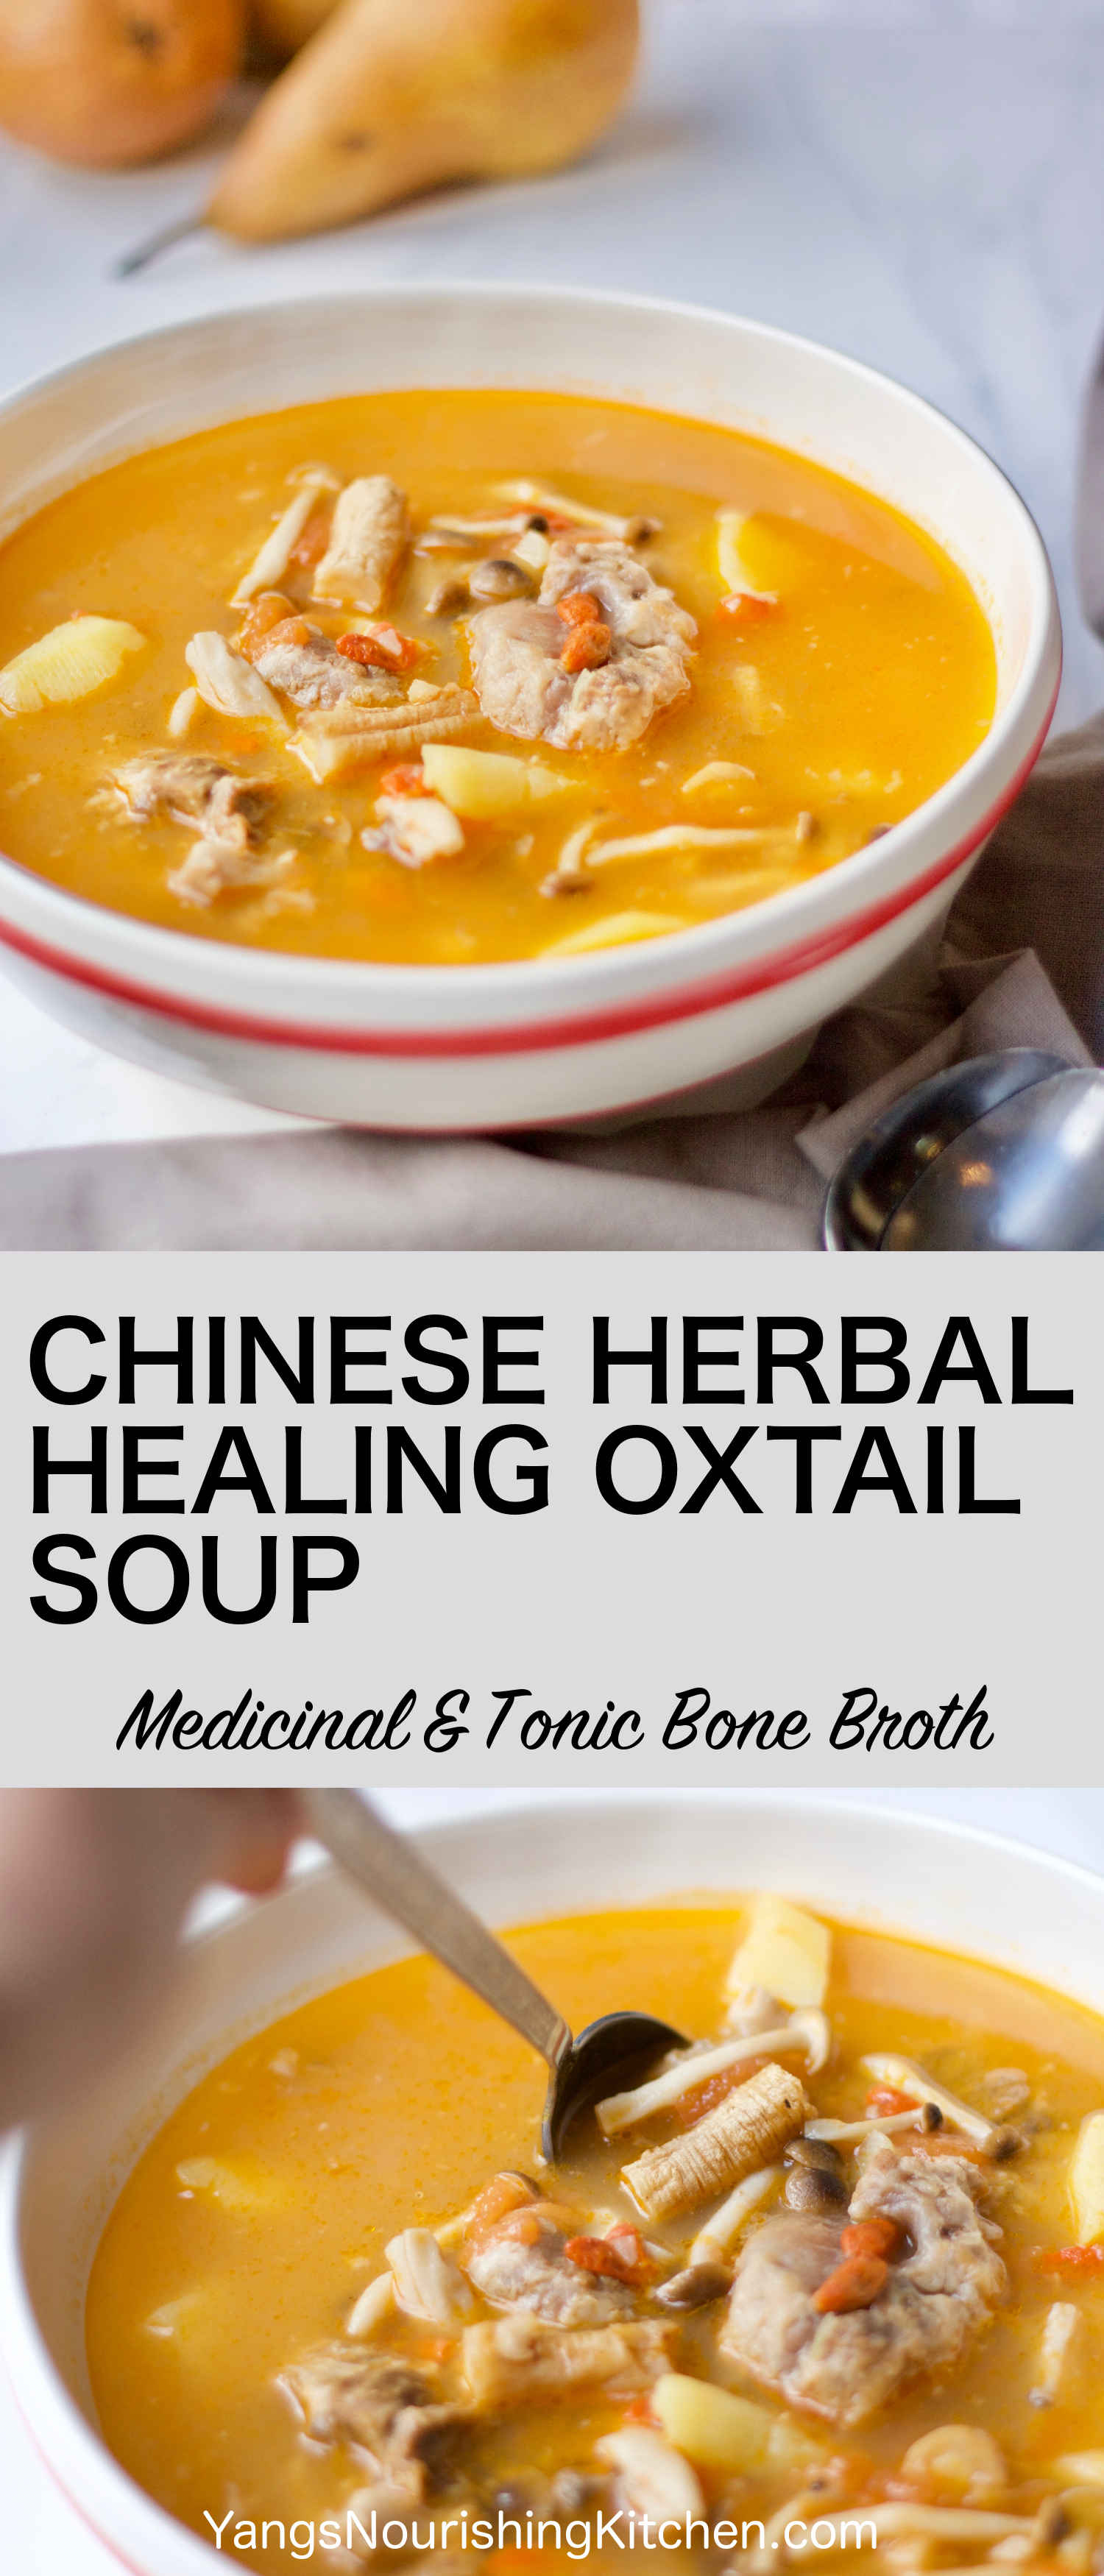 Chinese Herbal Healing Oxtail Soup